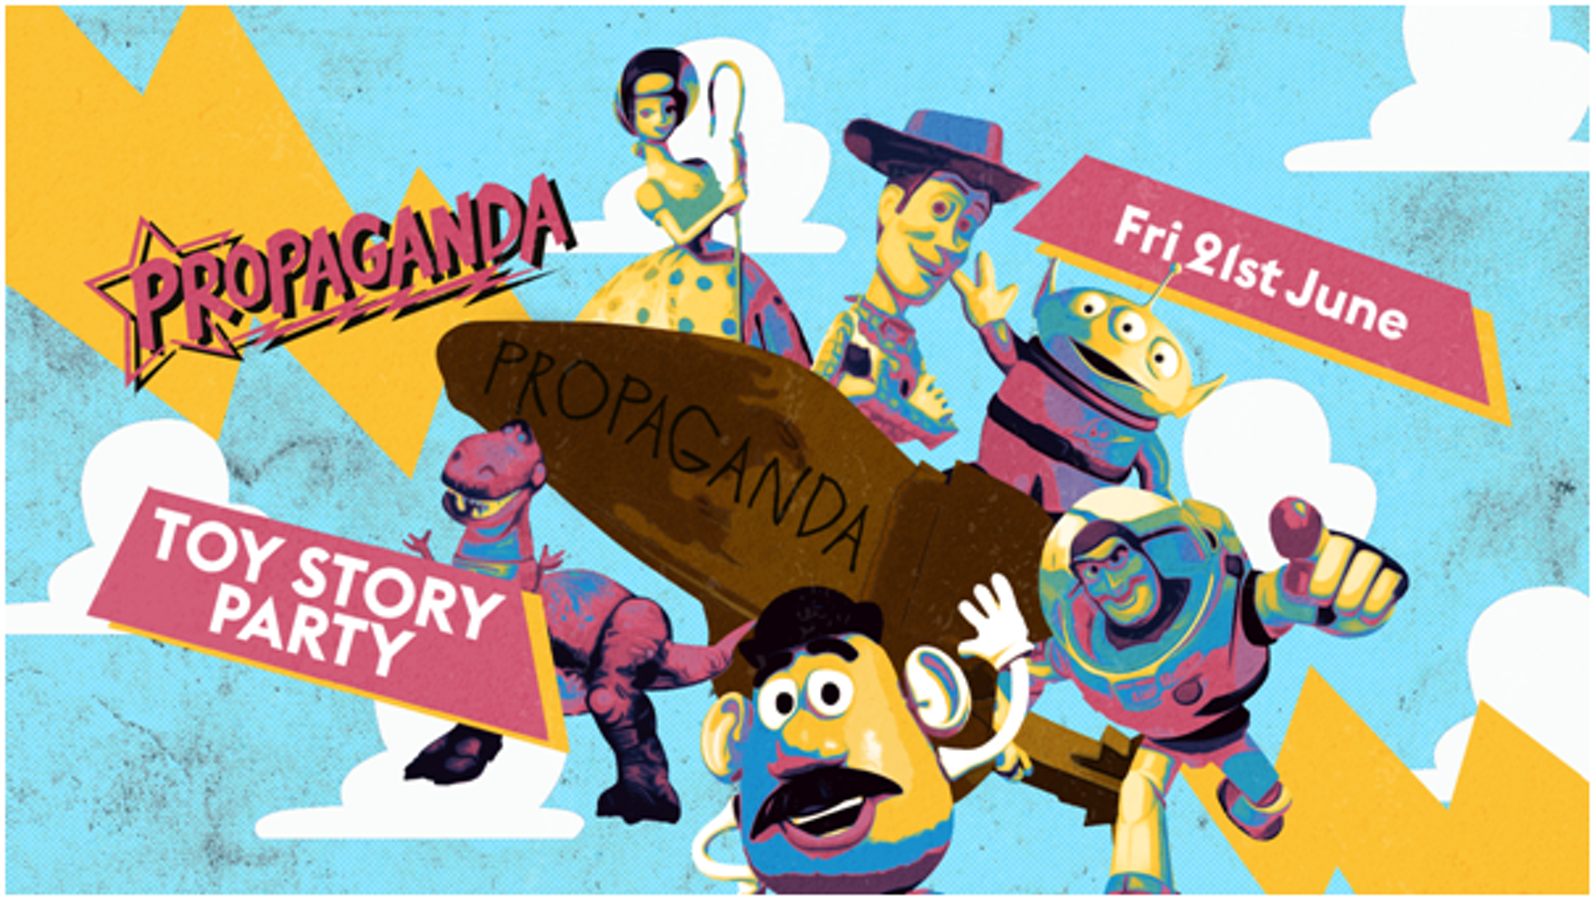 Propaganda Edinburgh – Toy Story Party